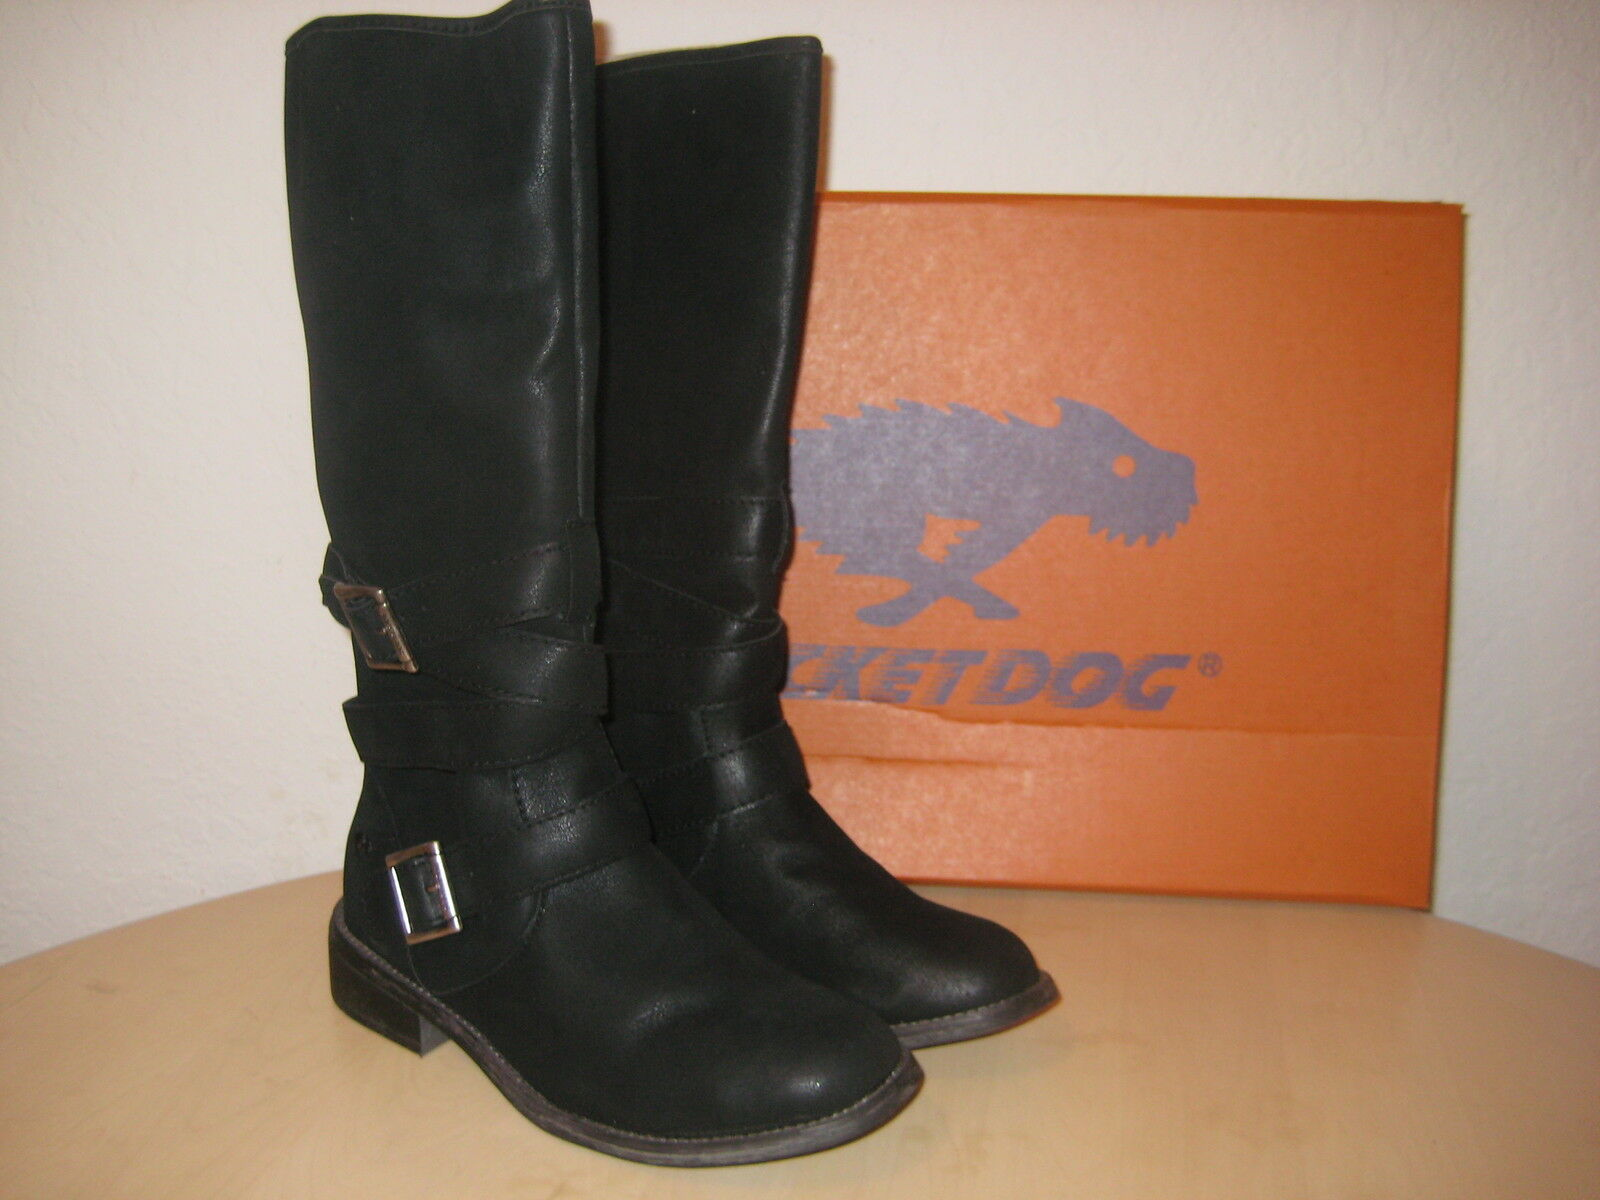 Rocket Dog Size 6 M GRETTA Black Knee High Boots New Womens Shoes